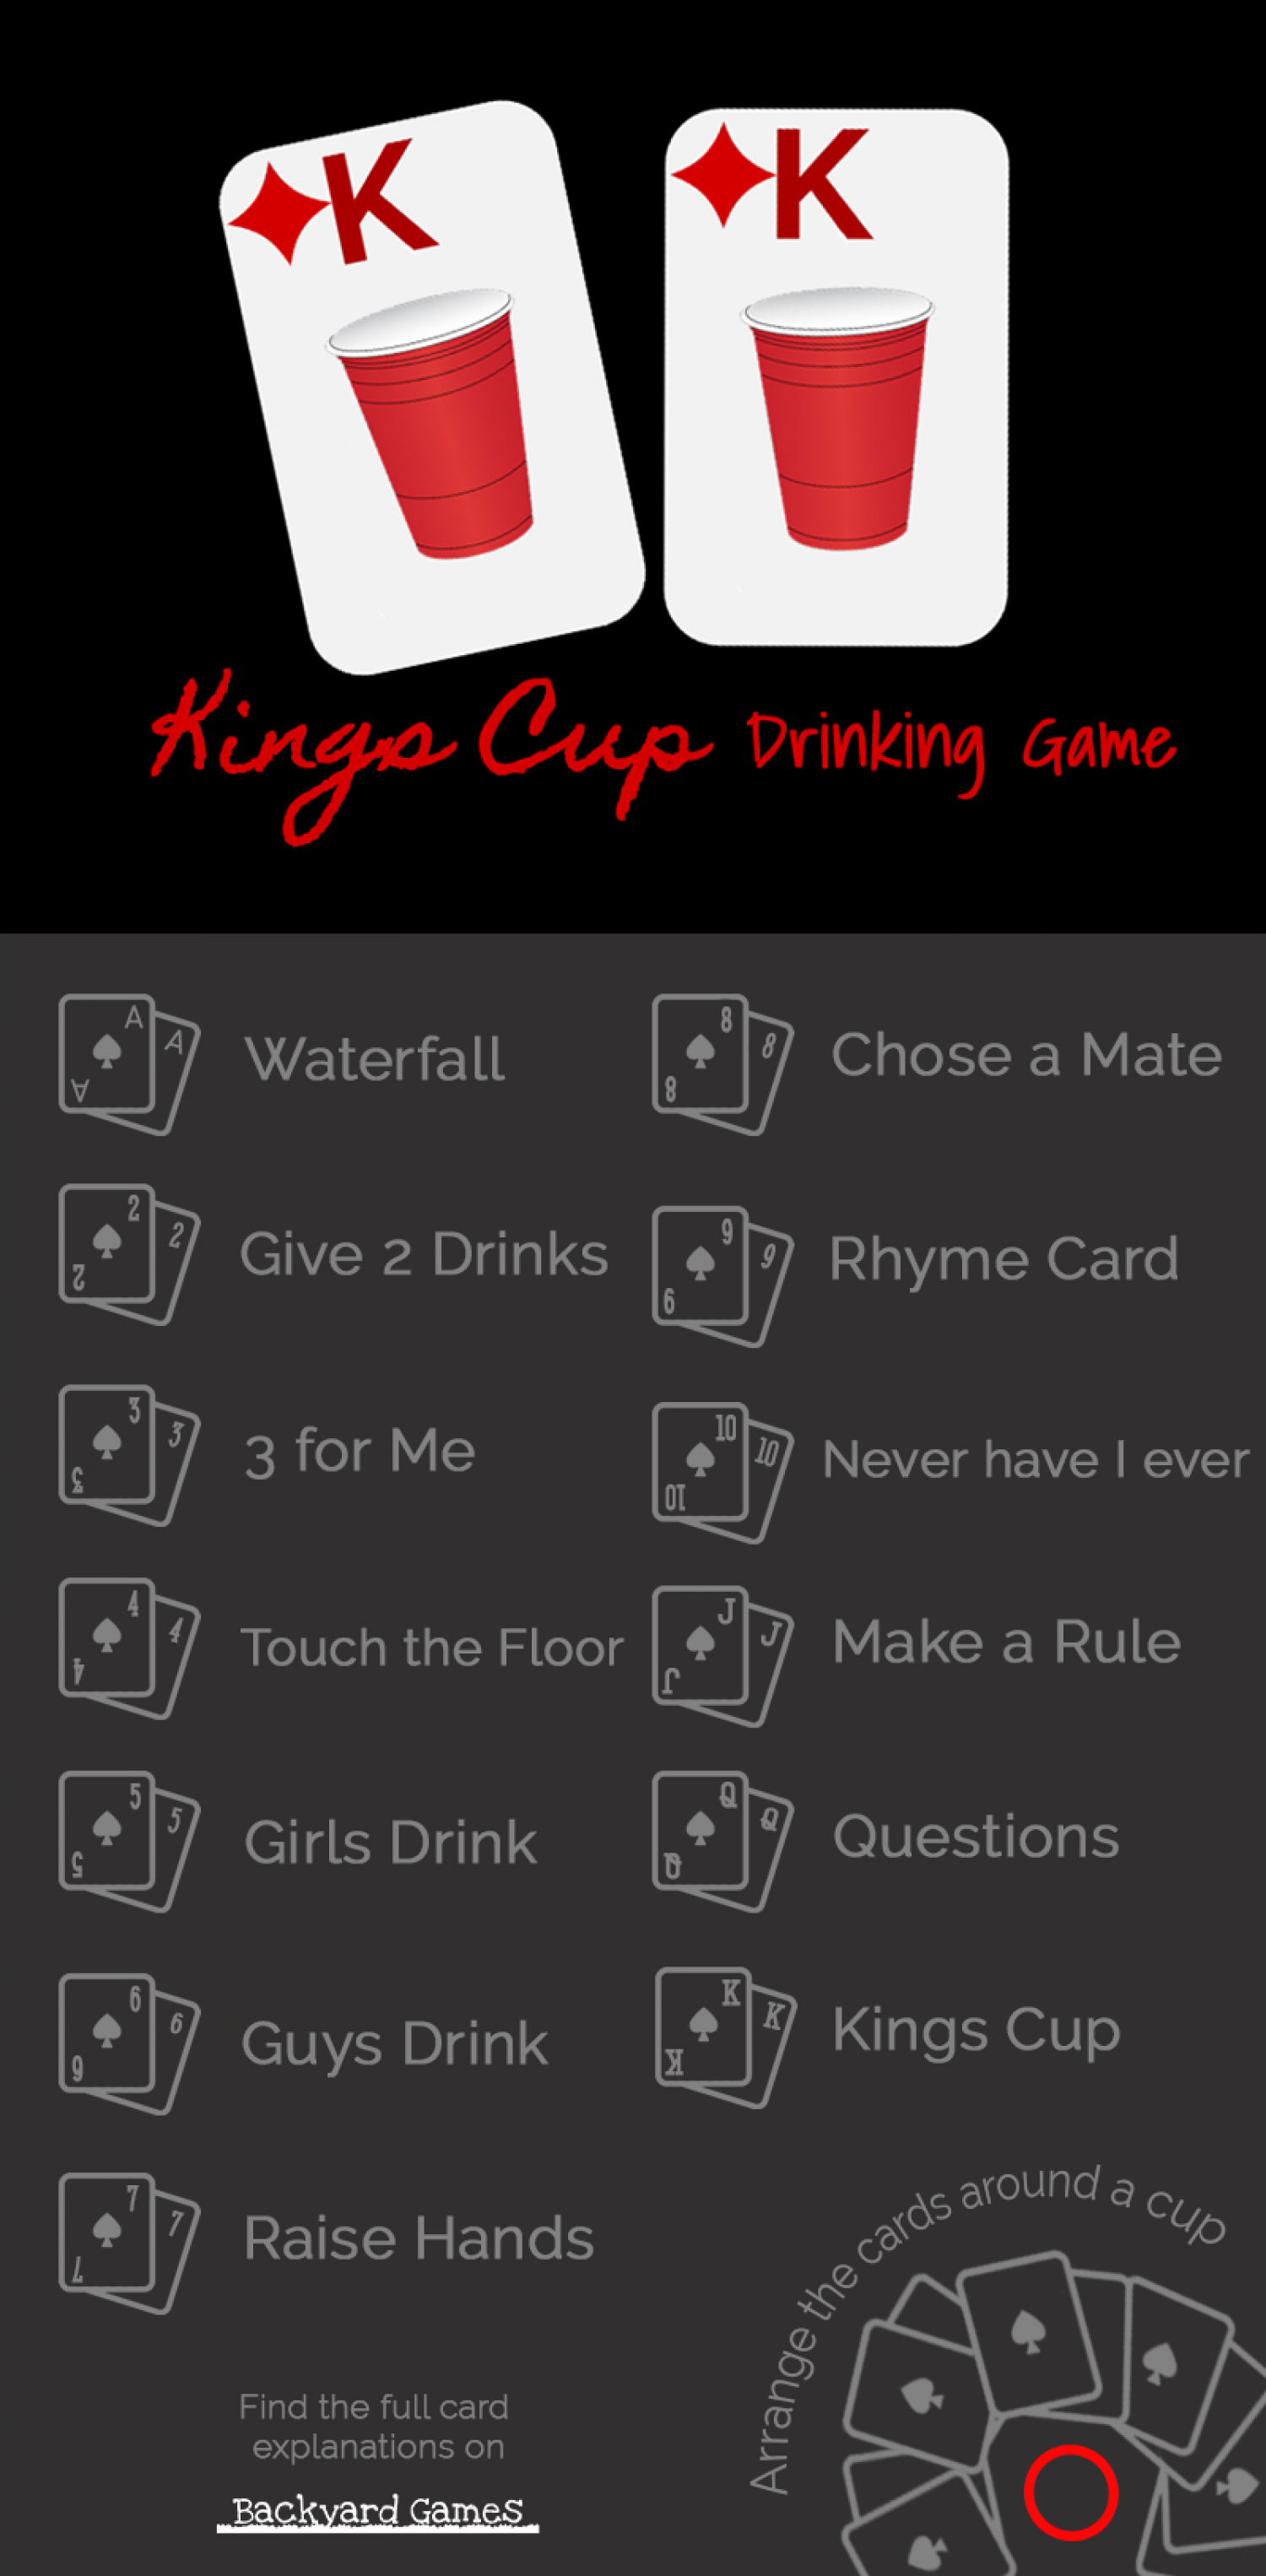 How to Play Kings Cup Drinking Game Infographic